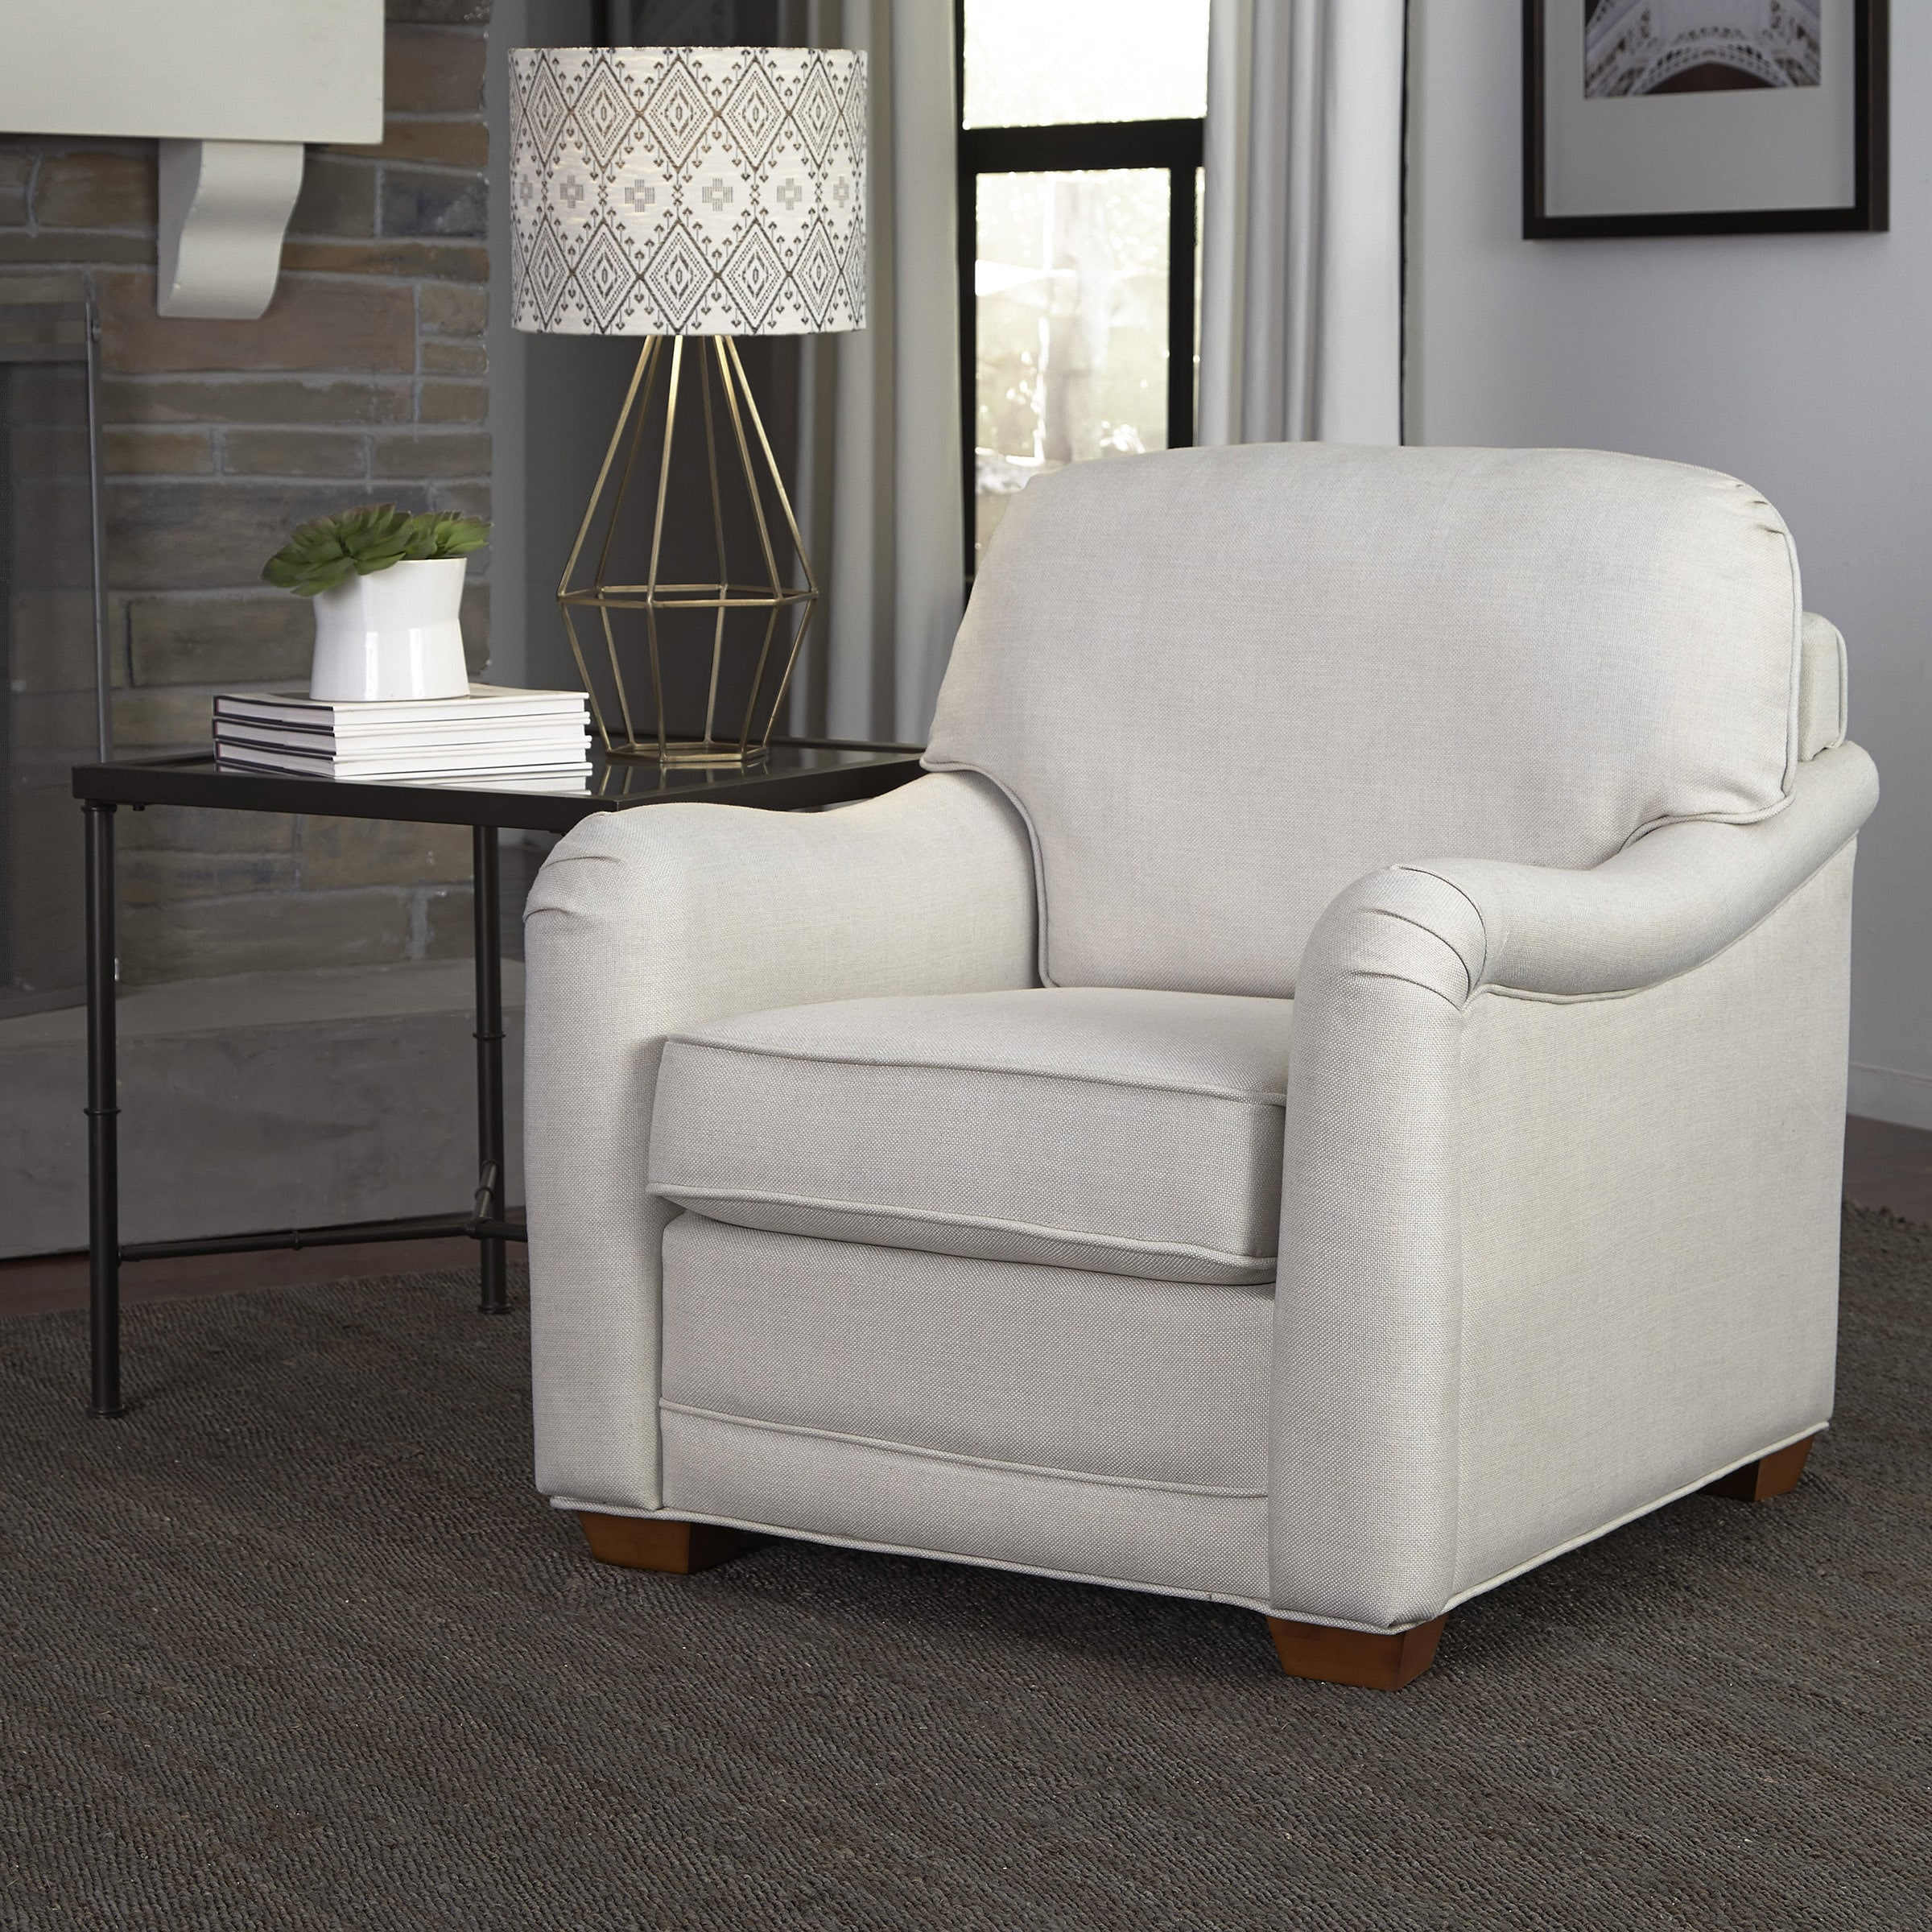 Stationary Chair Heather Ivory Upholstered Stationary Chair By Home Styles